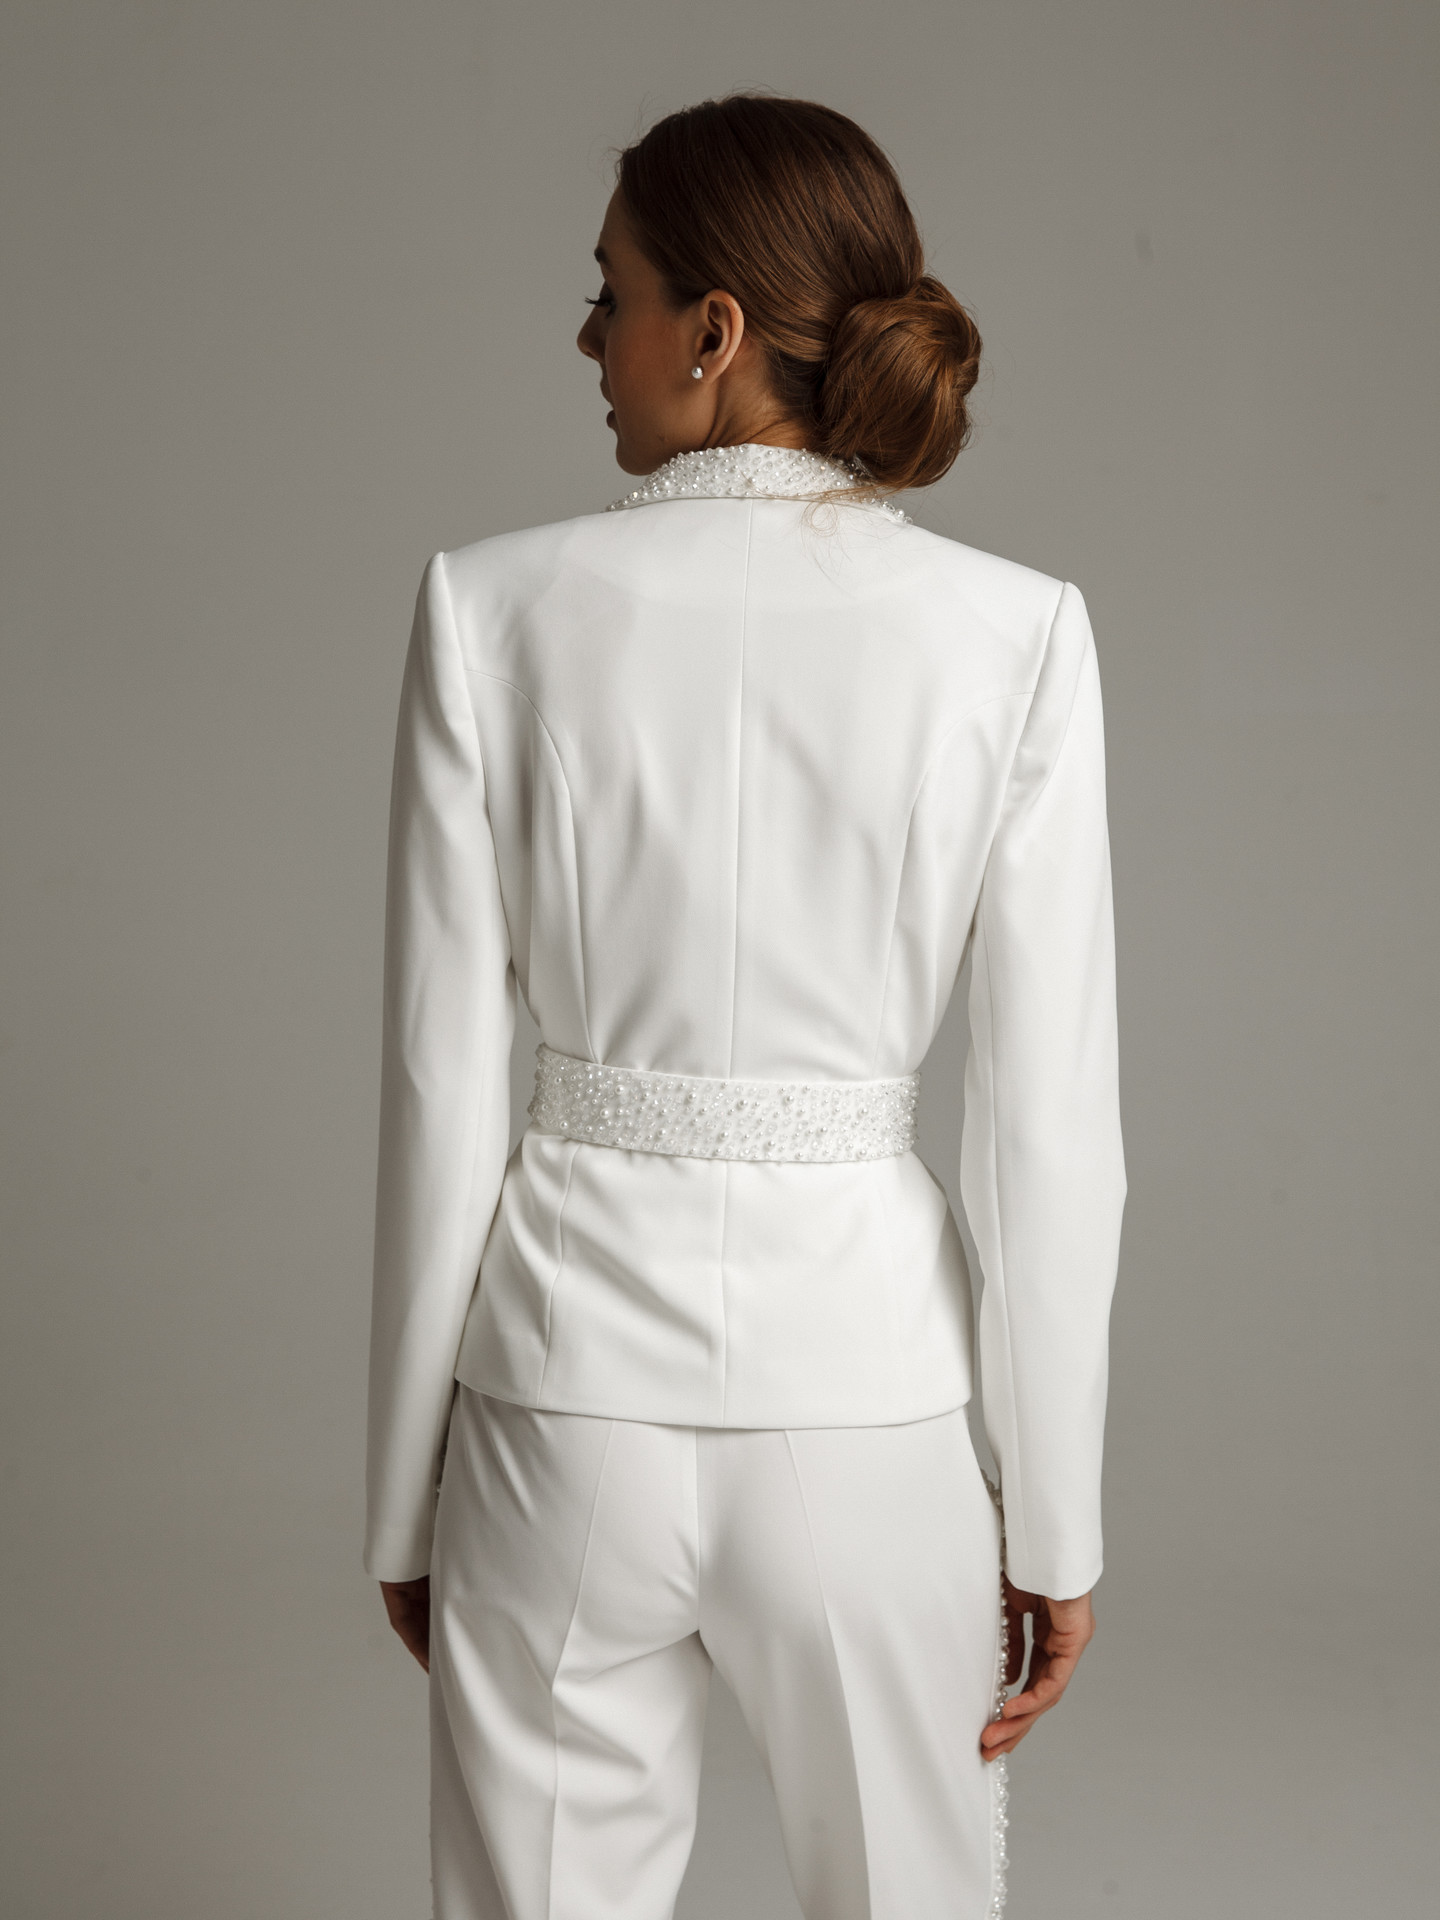 Beaded jacket, 2021, couture, jacket, bridal, off-white, beaded bridal suit, sleeves, embroidery